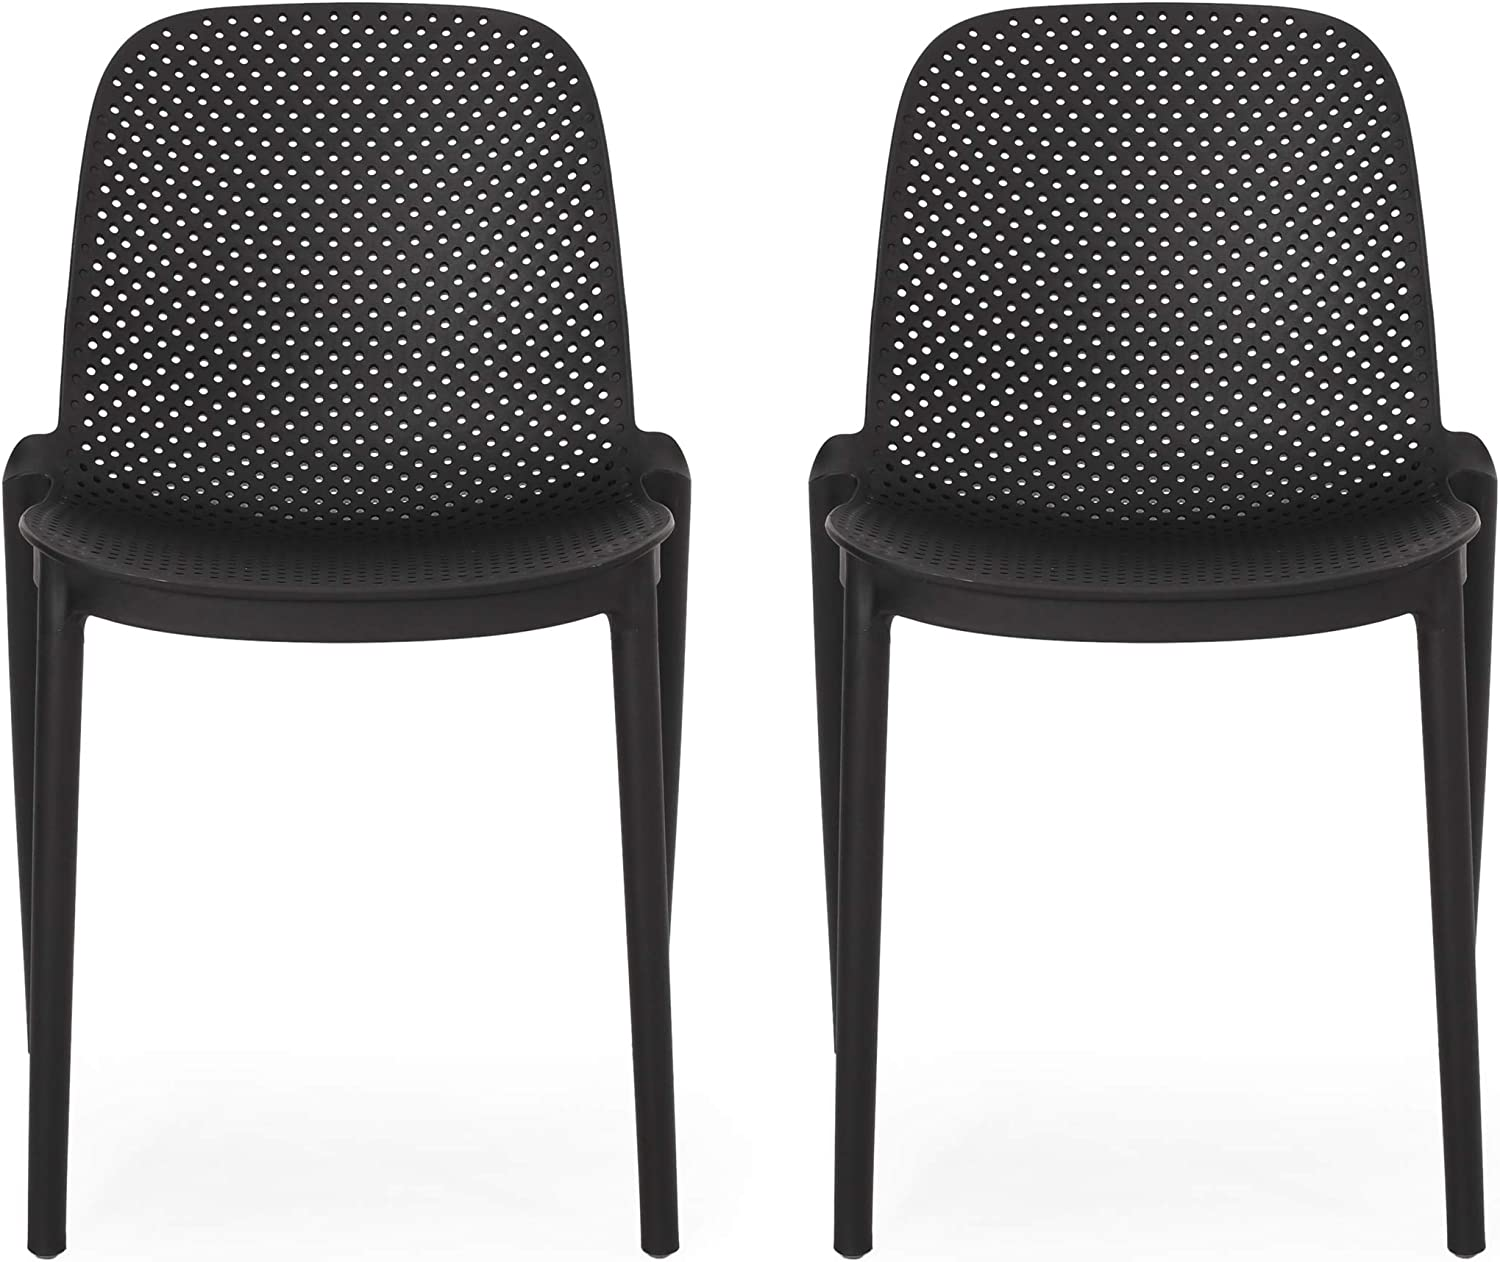 Christopher Knight Home 312244 Raevyn Outdoor Dining Chair (Set of 2), Black